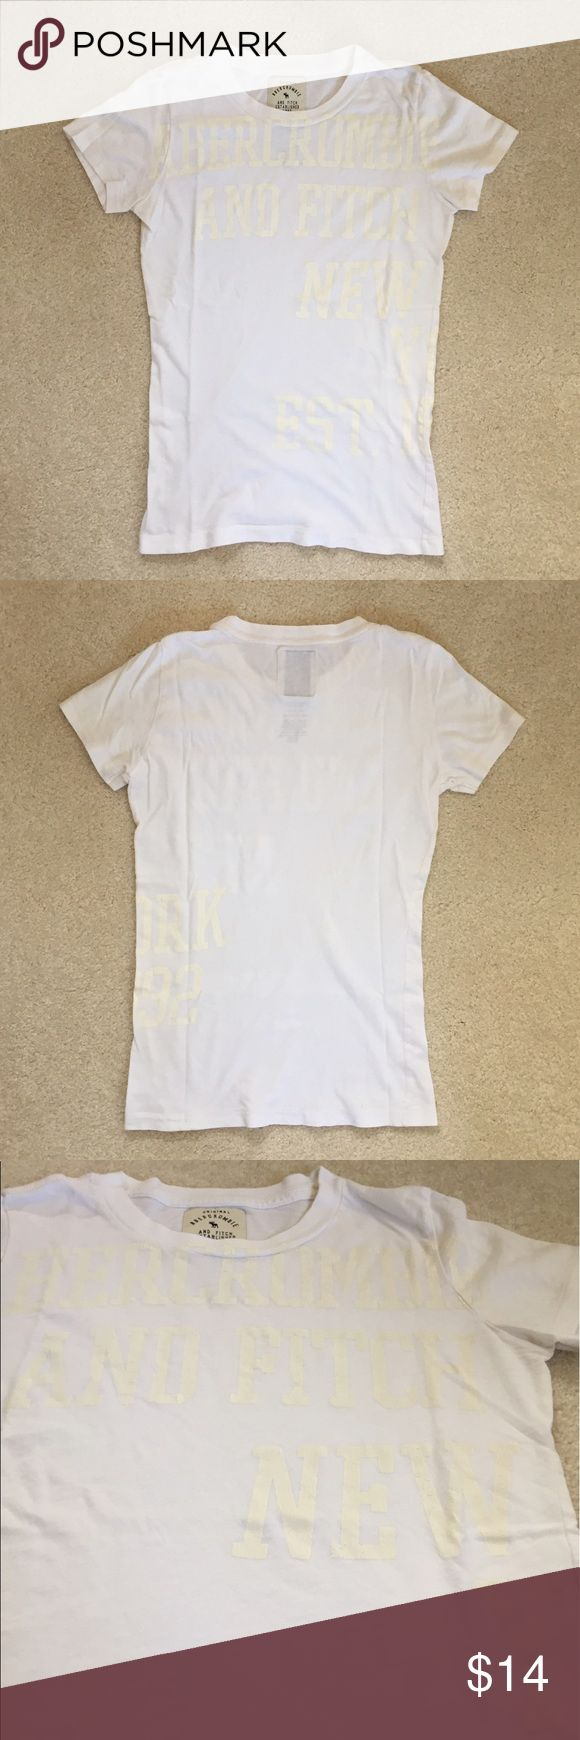 Abercrombie and Fitch white tee White tshirt from Abercrombie and Fitch. Excellent condition Abercrombie & Fitch Tops Tees - Short Sleeve